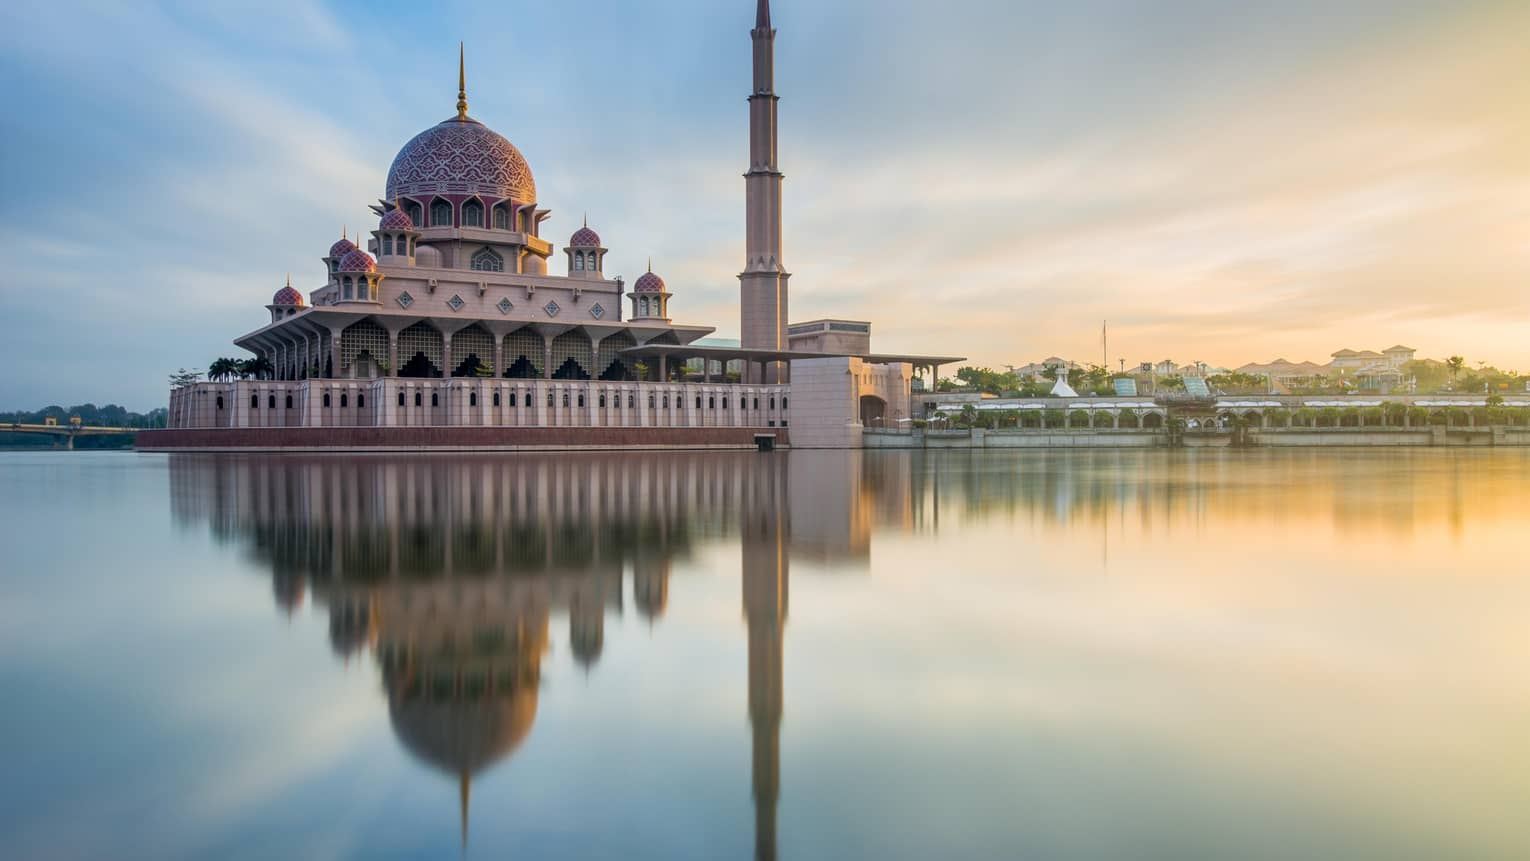 Putra Mosque reflects off the river